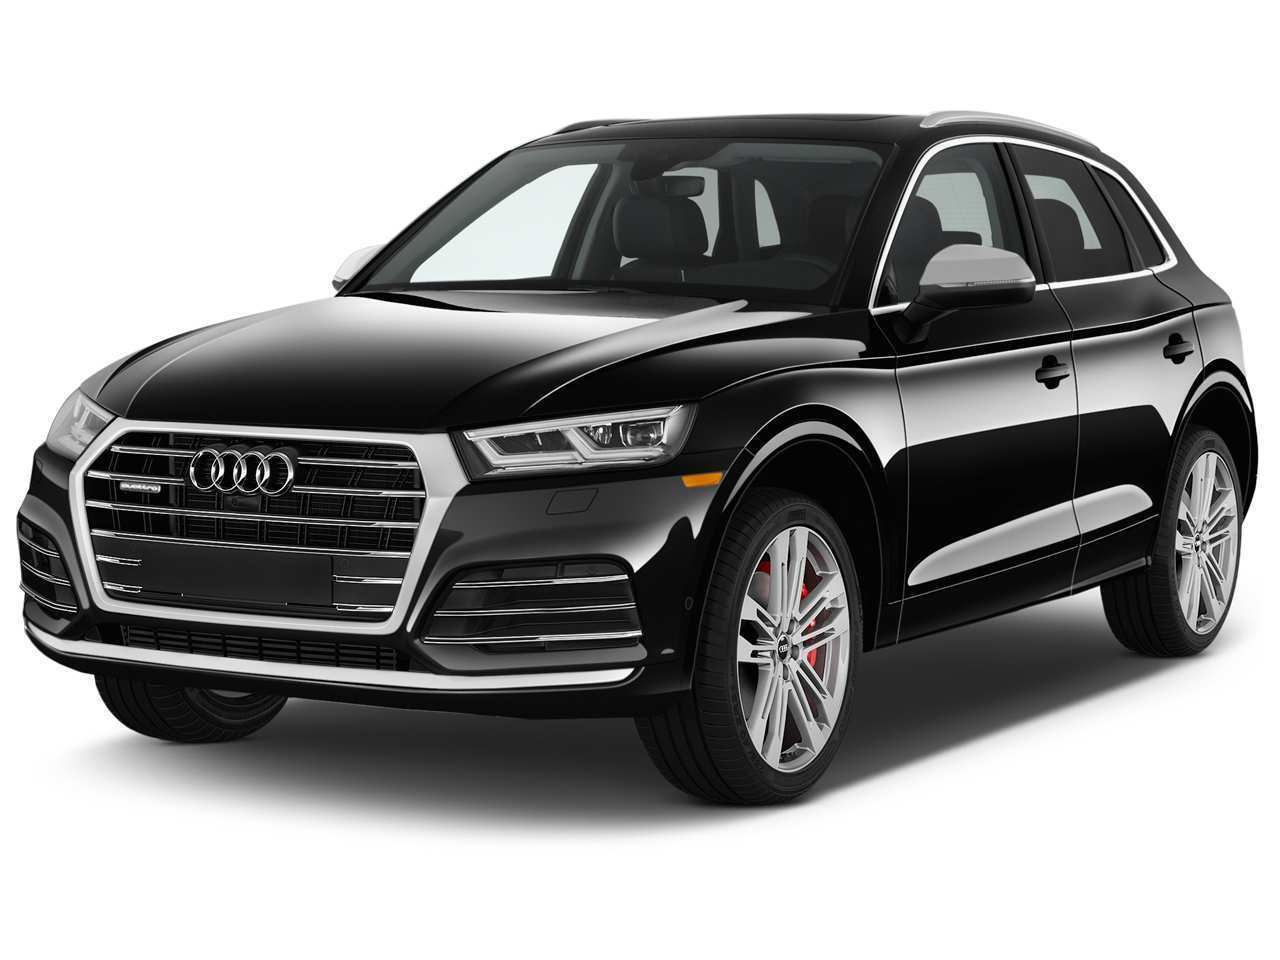 74 The 2019 Audi Sq5 Price Design And Review